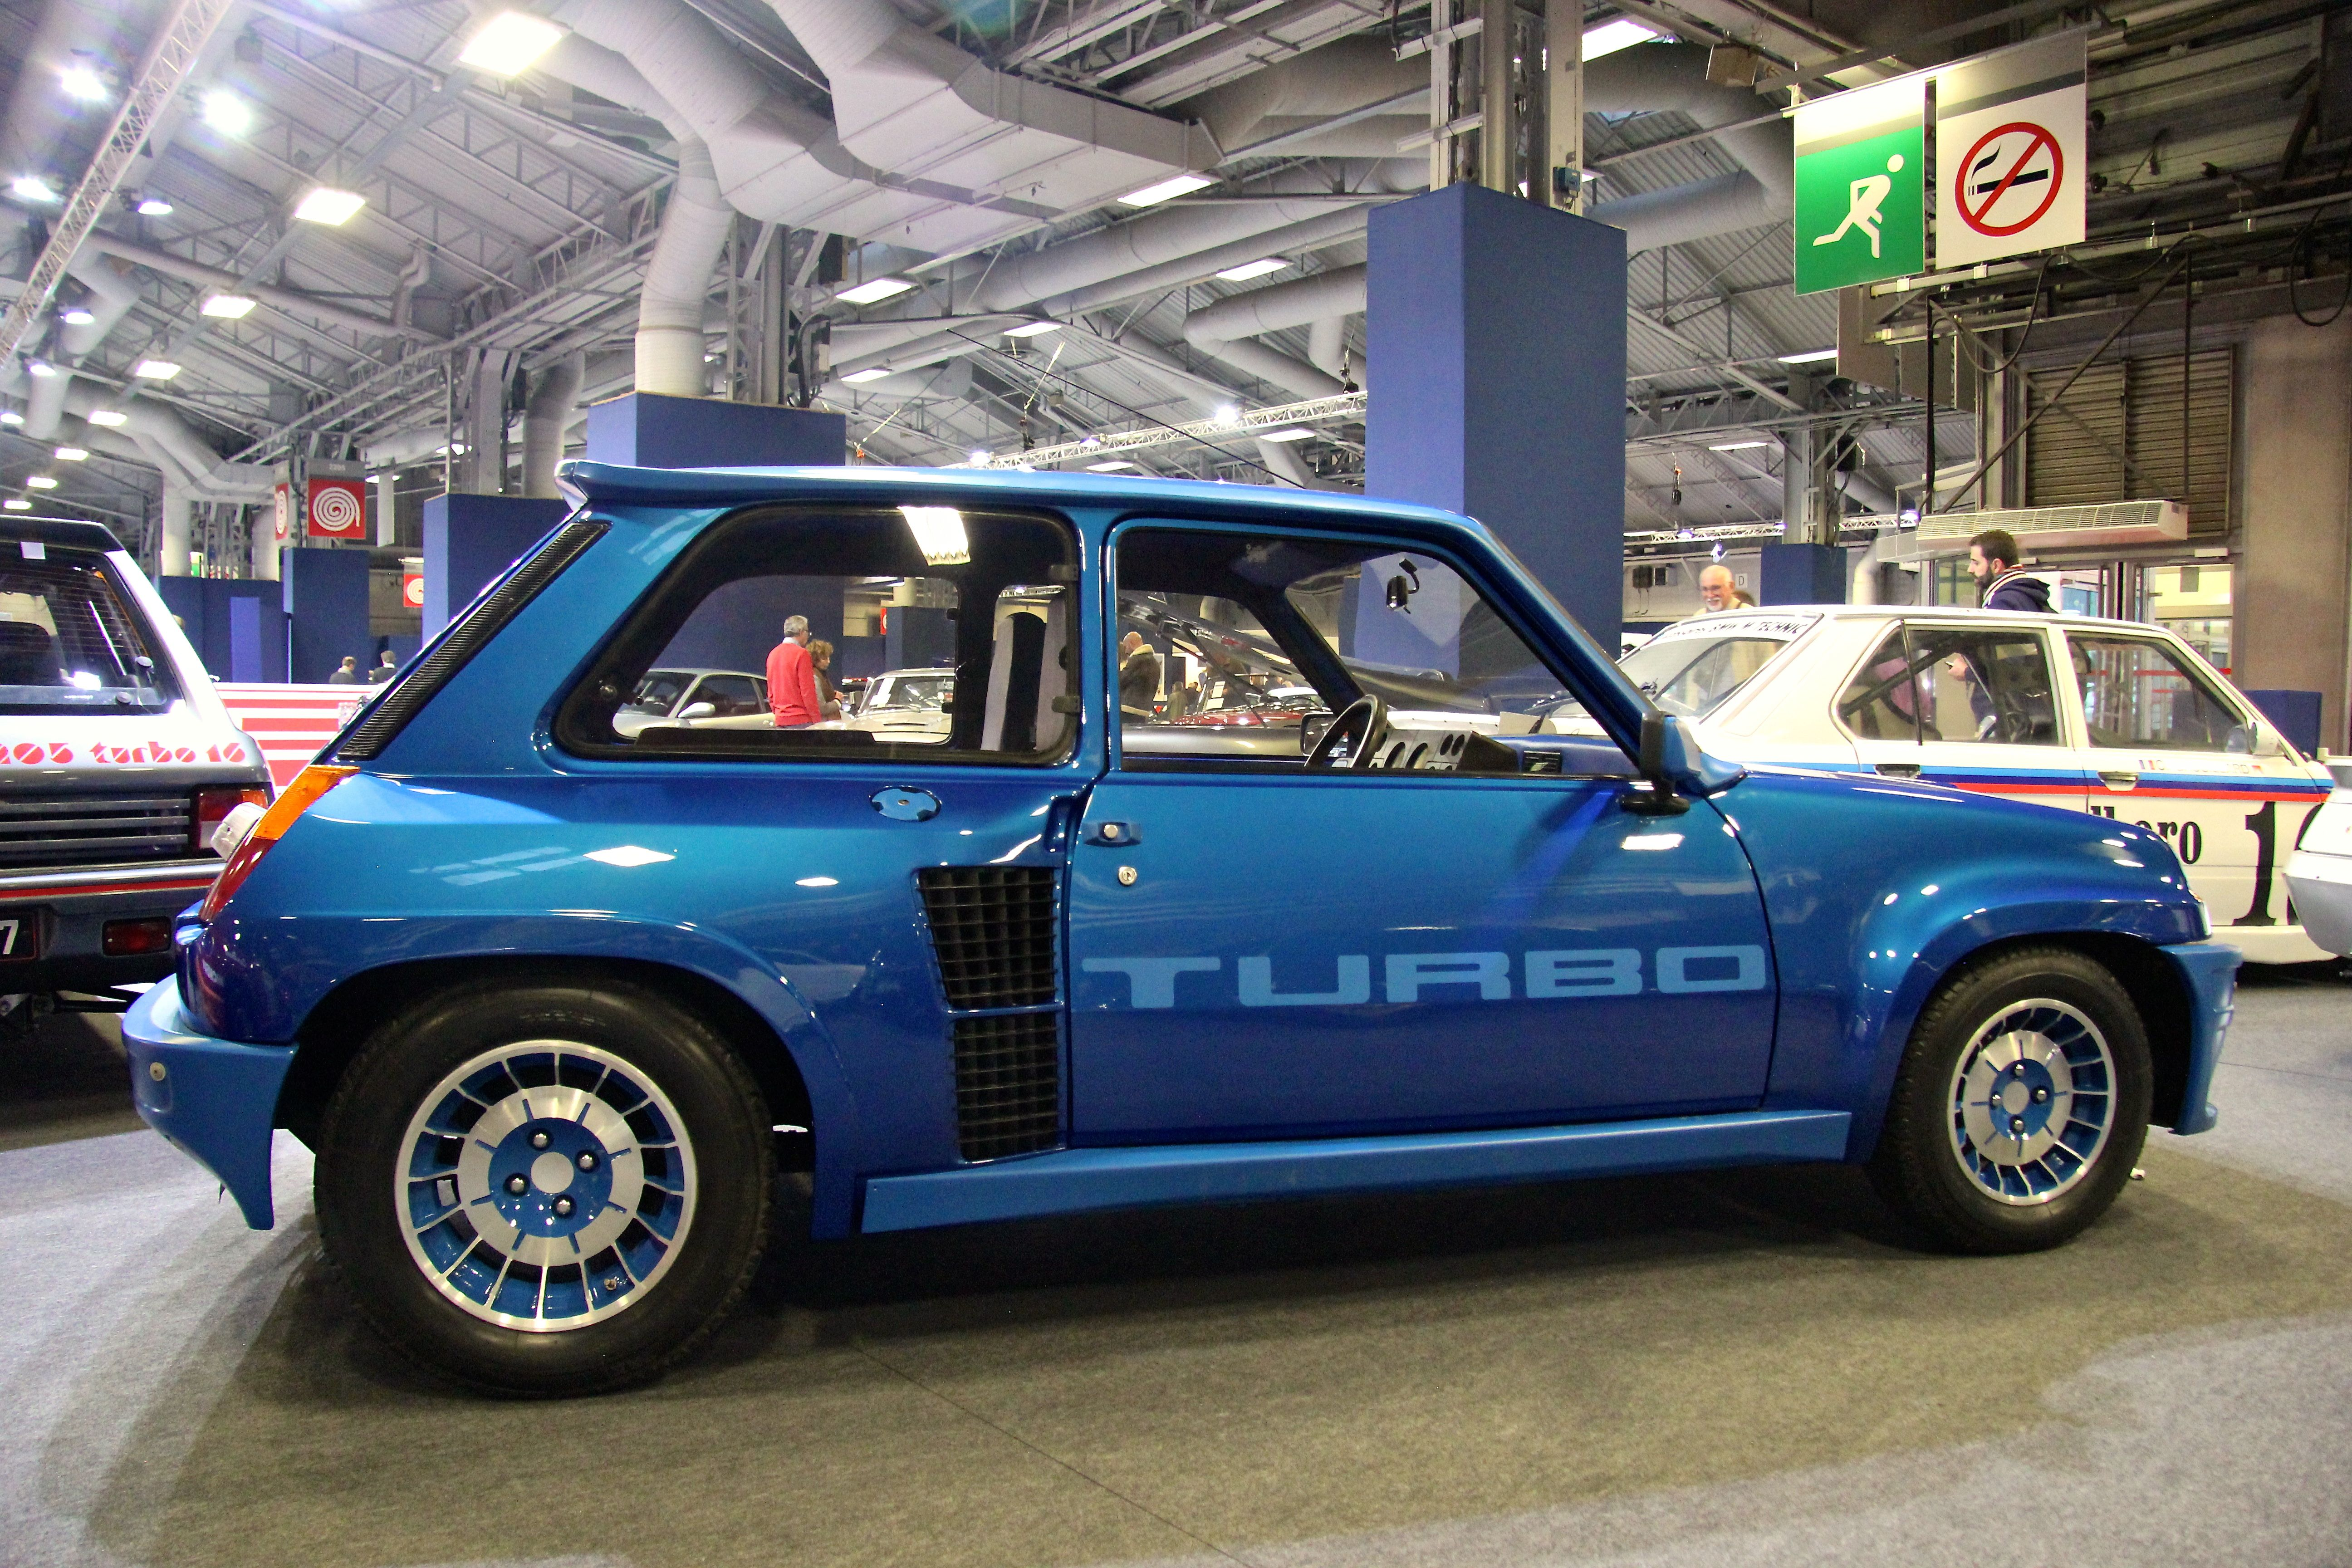 Renault 5 Turbo - 1982 - Retromobile - Artcurial - 2018 - photo Ludo Ferrari